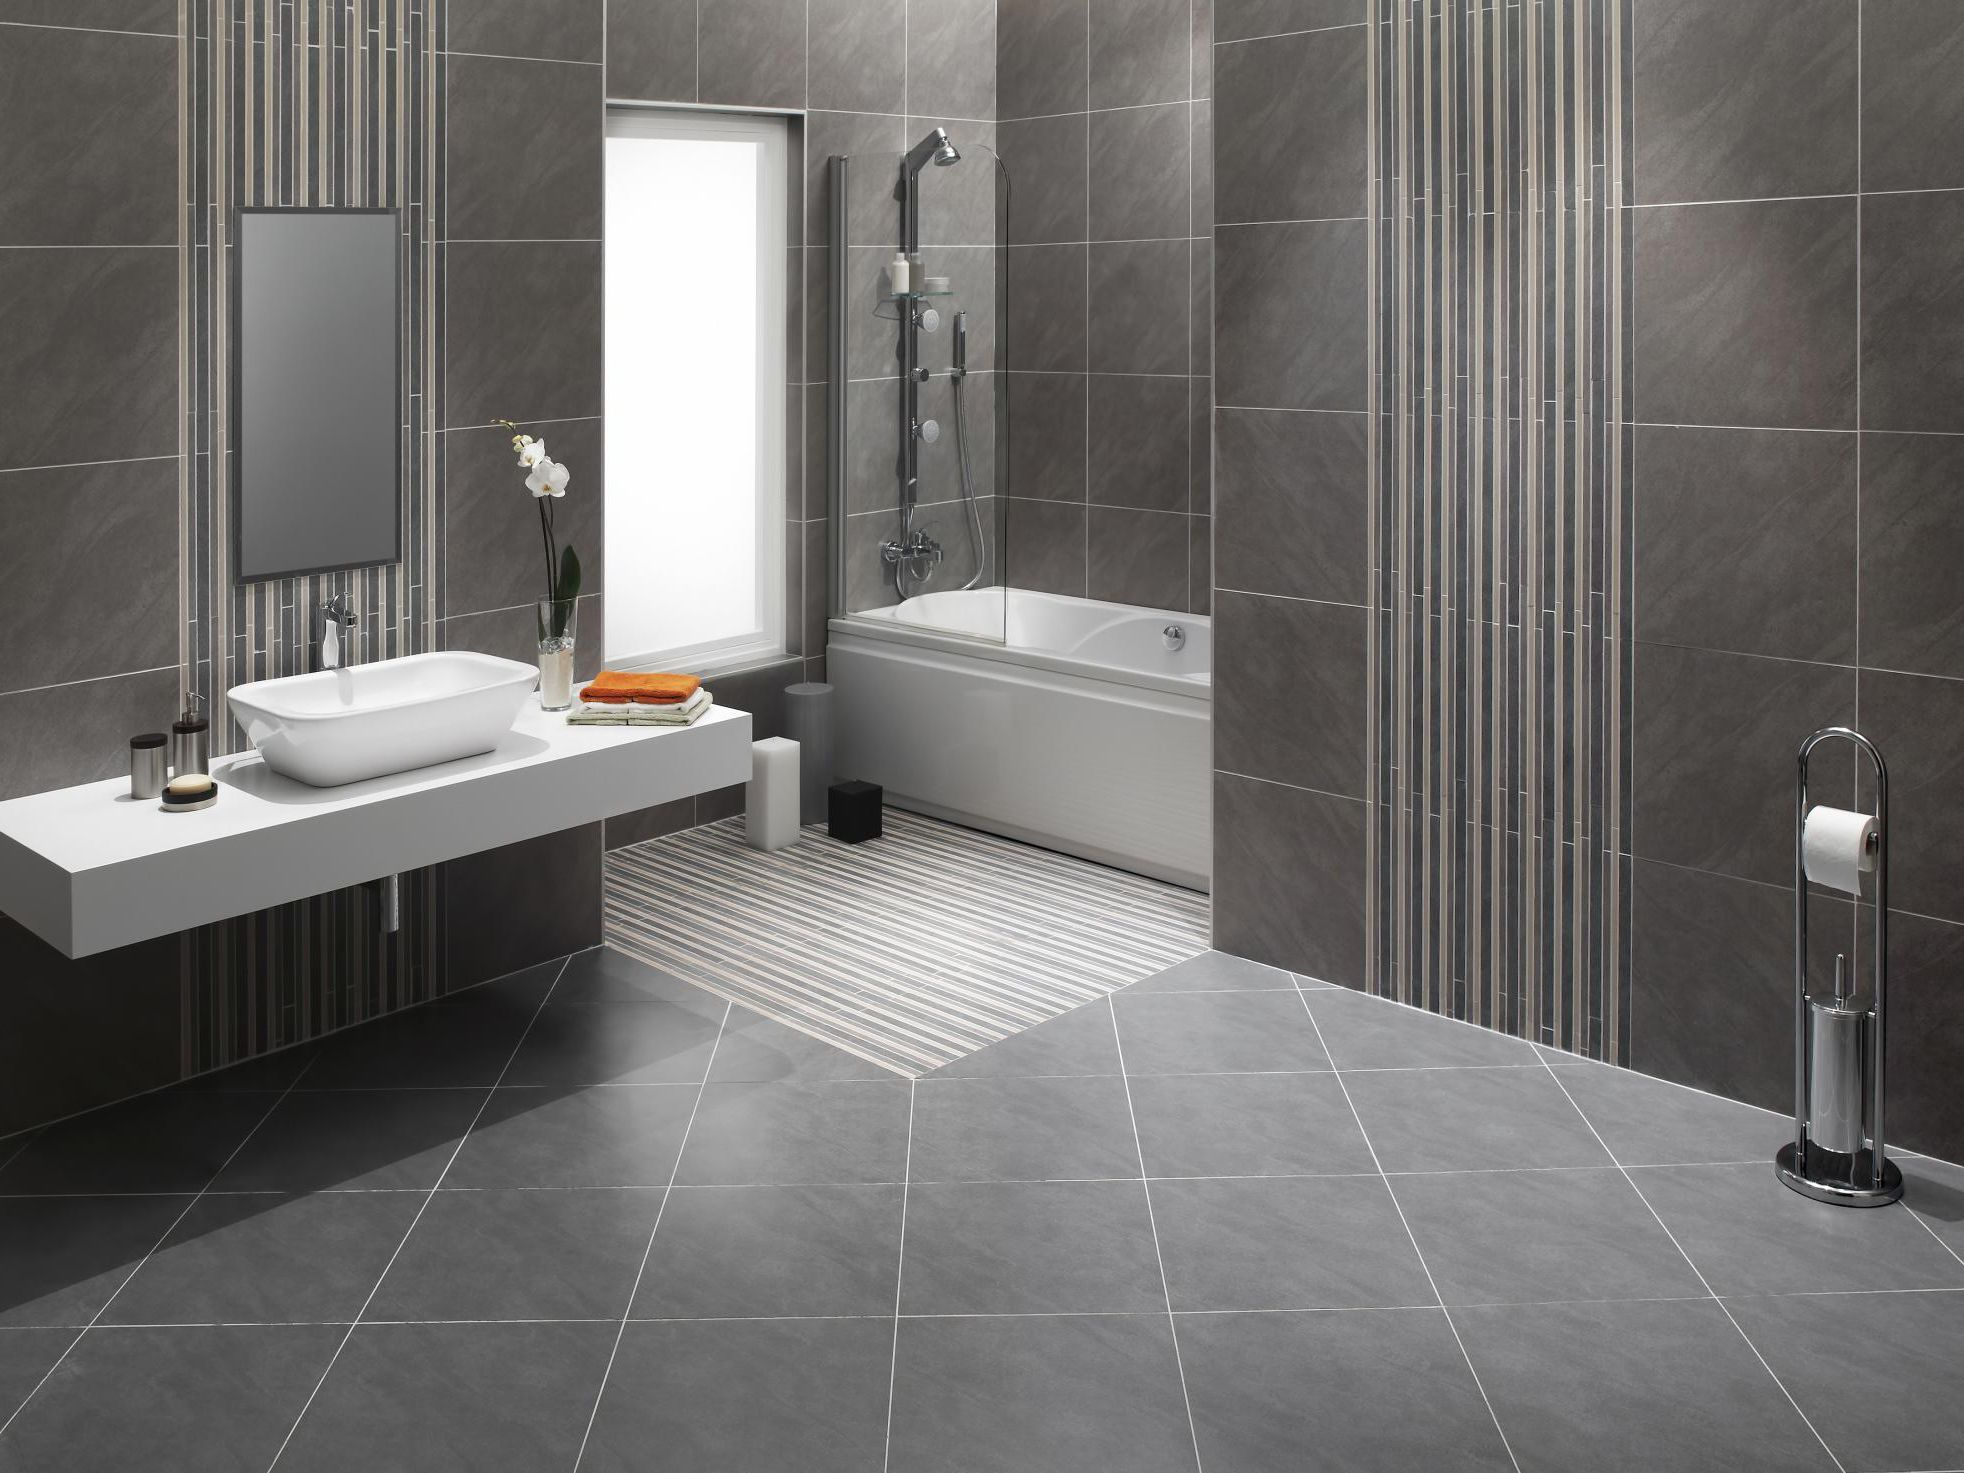 How to choose the best Bathroom Tiles for your home?